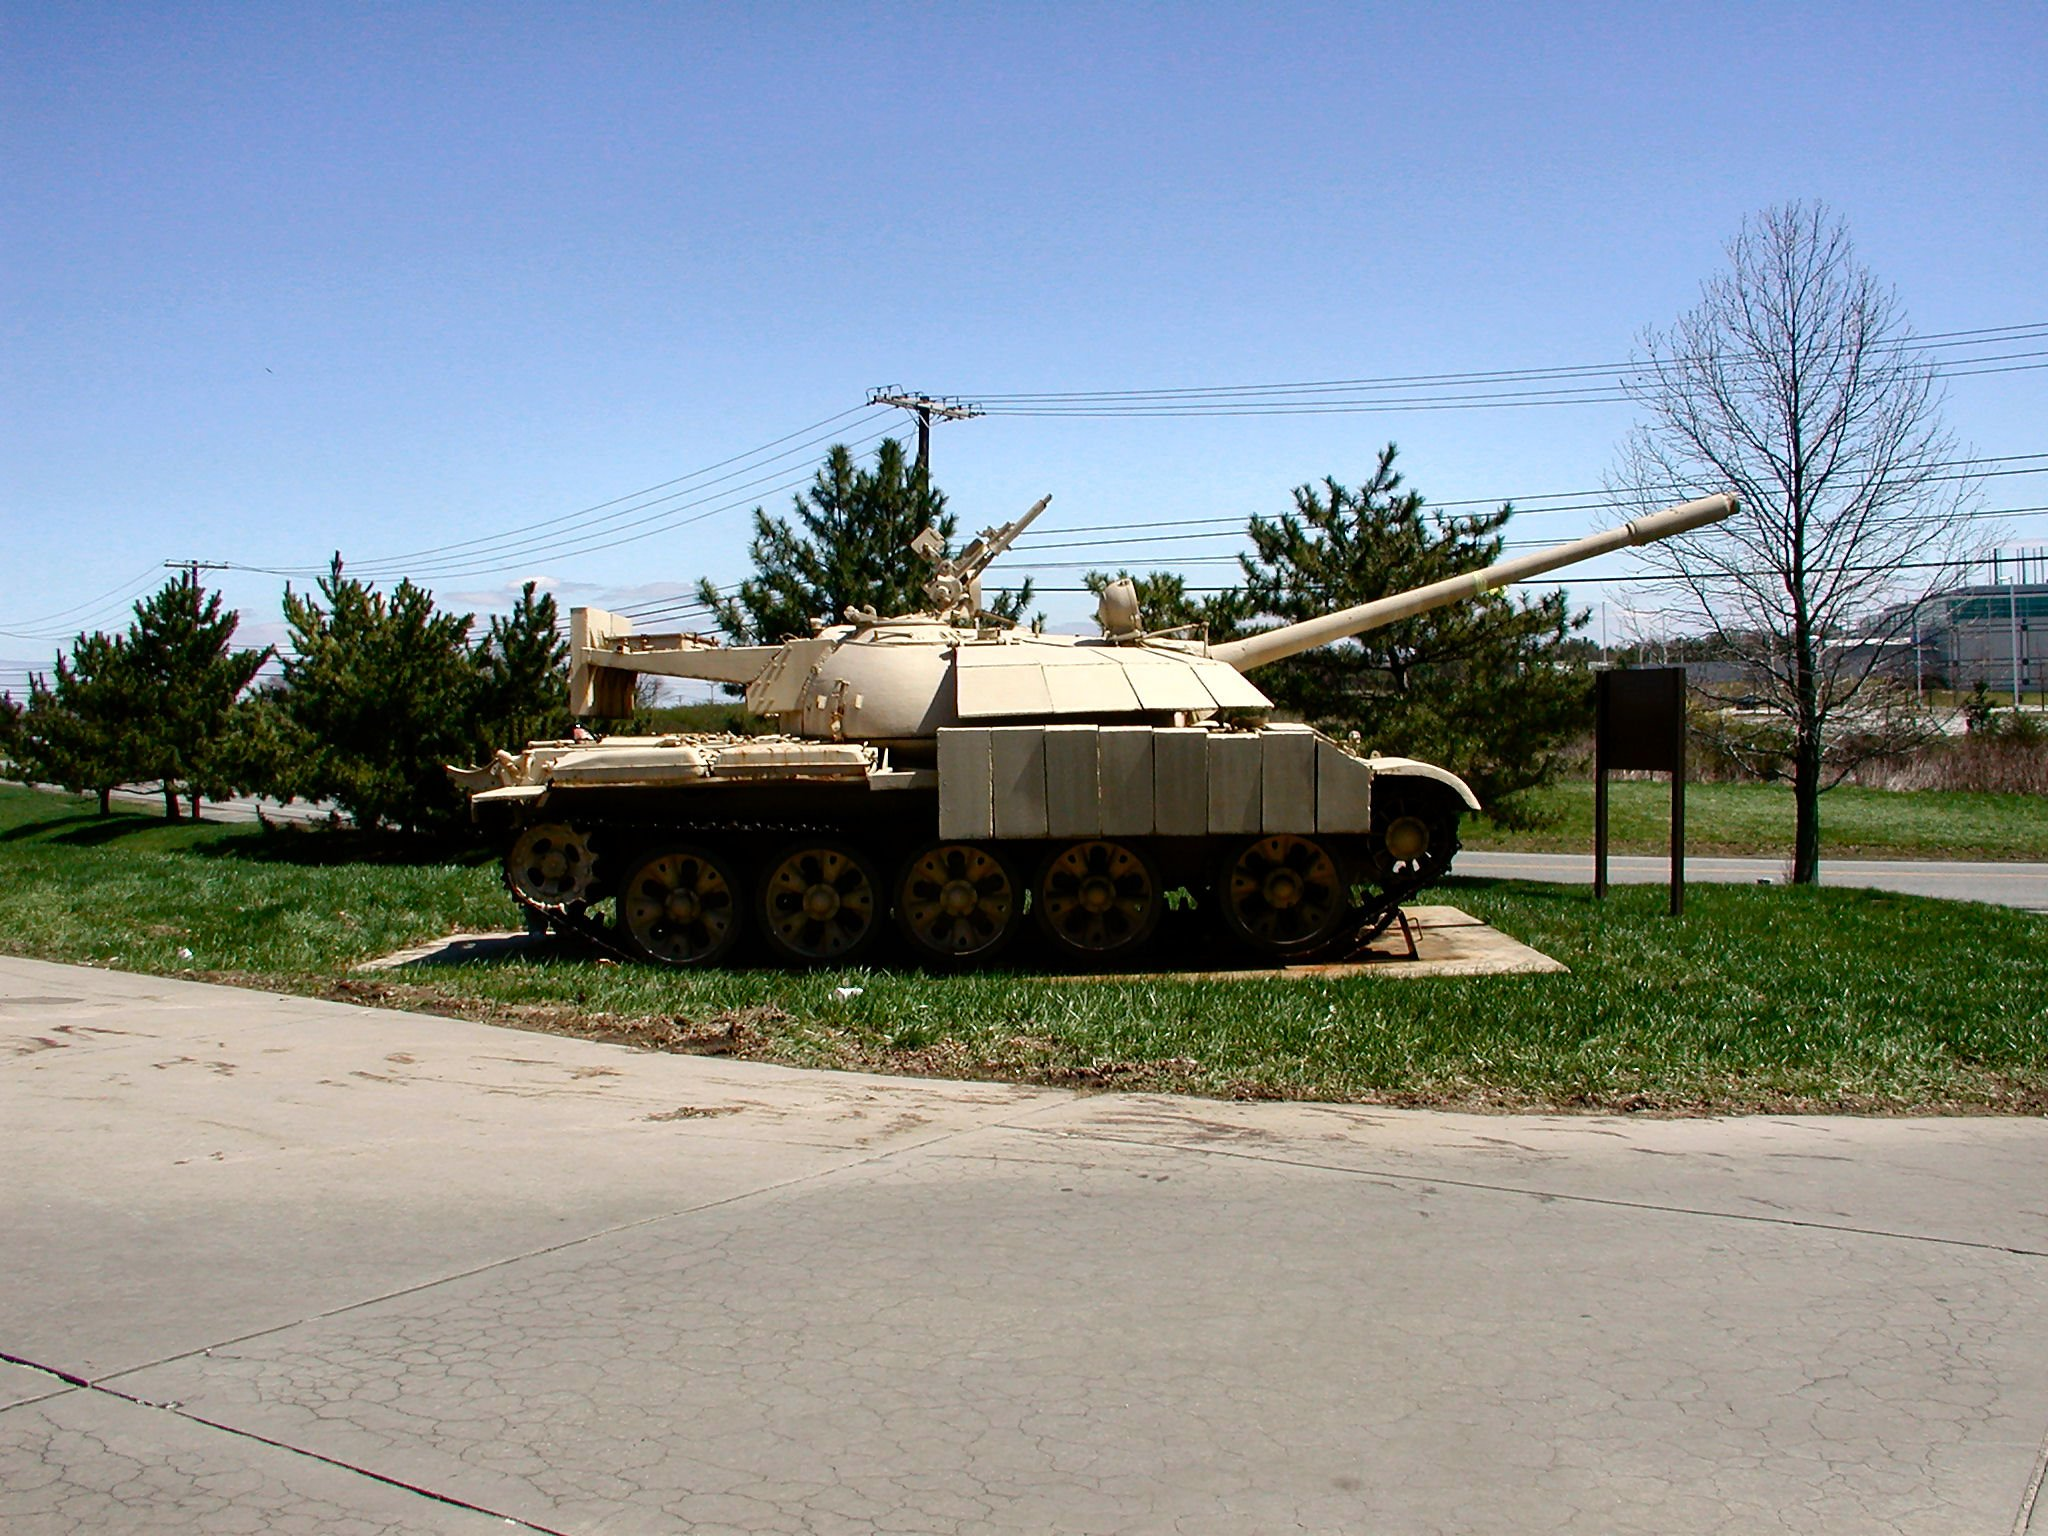 T-55 Enigma, serving as a gate guardian for the 203rd Military Intelligence Battalion, Aberdeen Proving Ground. The turret counterweight is clear in this image.